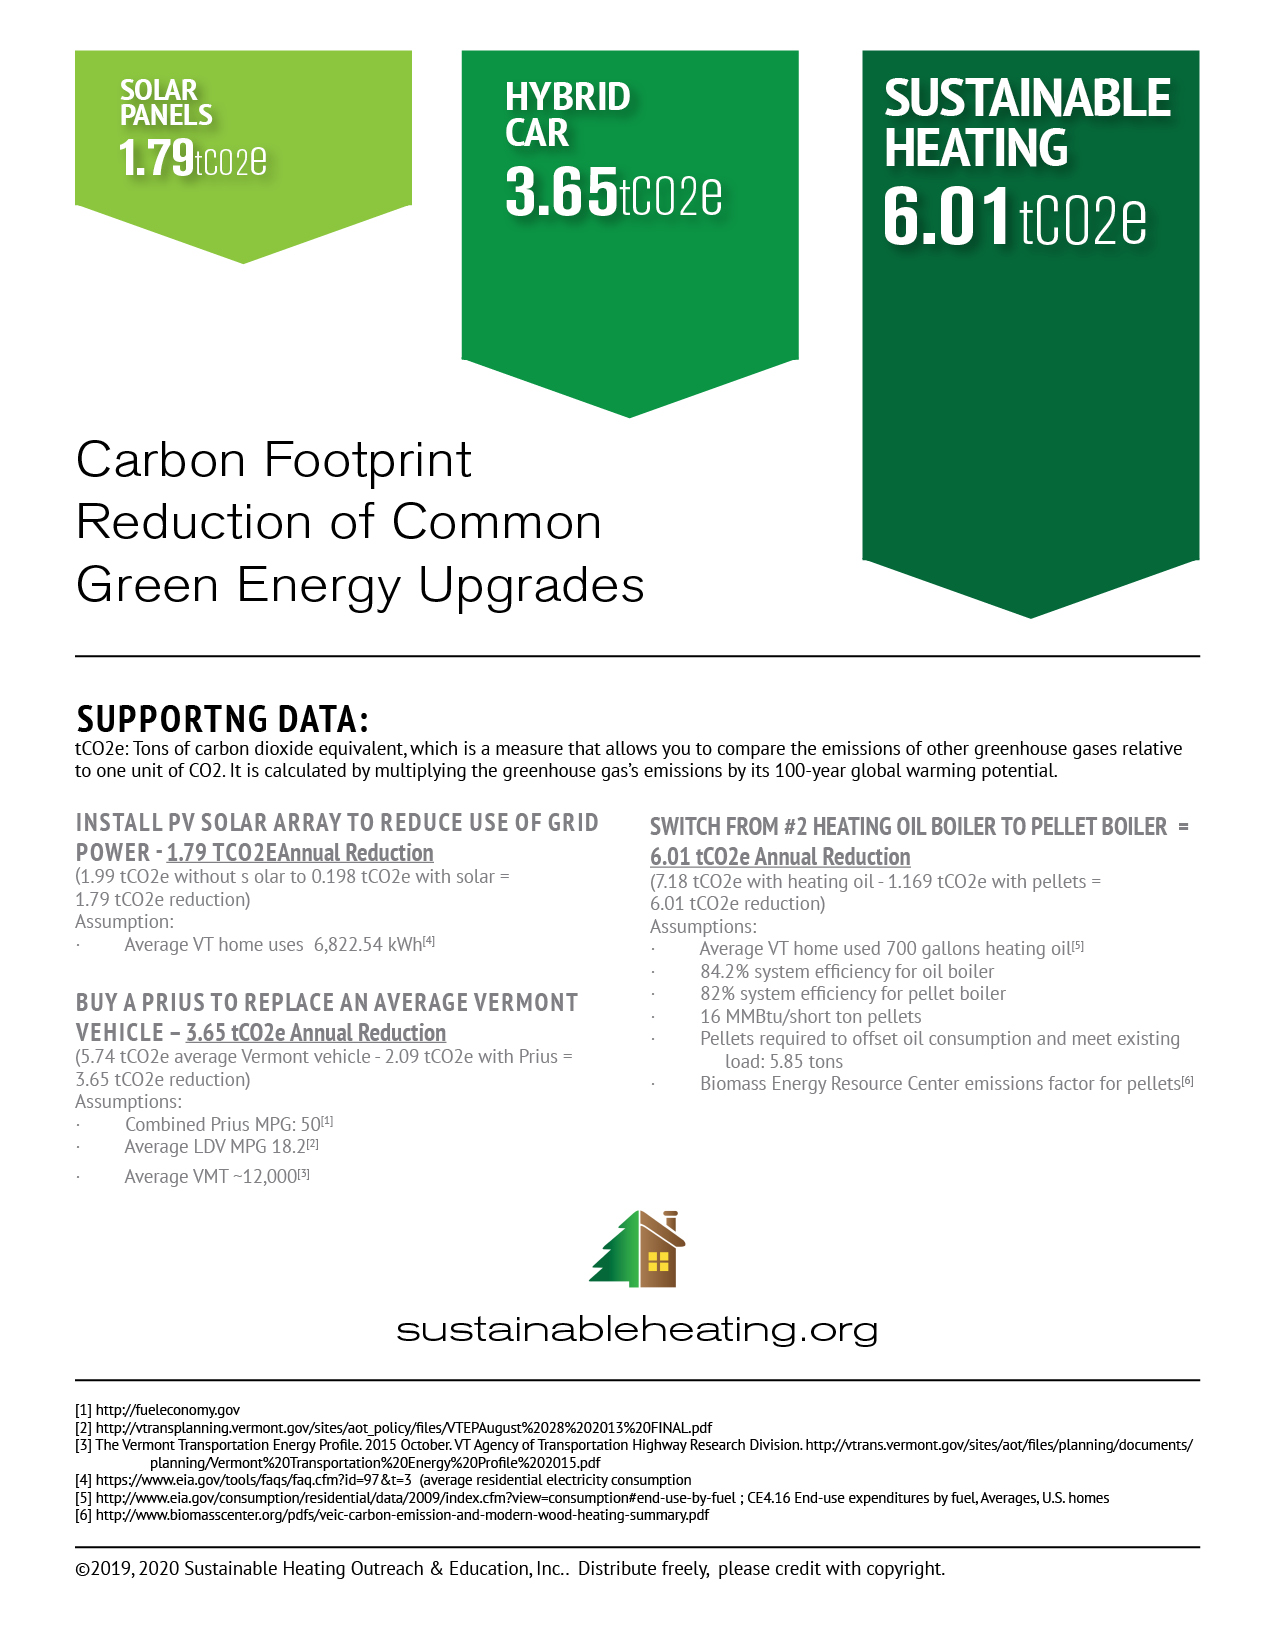 Carbon Footprint Comparison of Solar v. Hybrid vs. wood pellet furnace